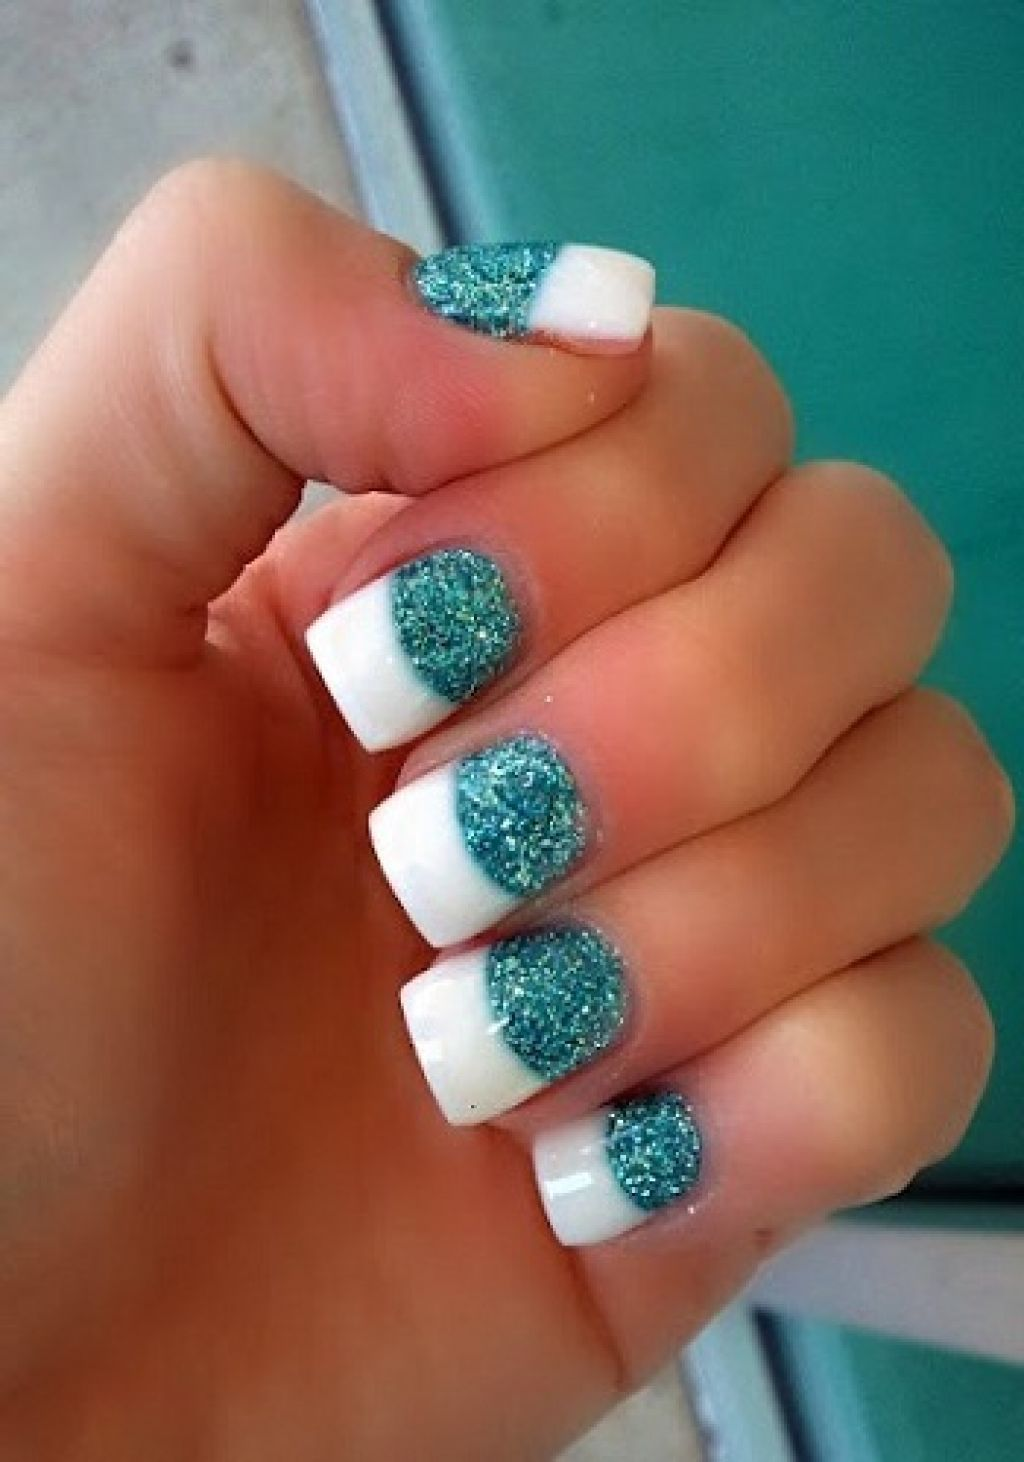 Summer Acrylic Nails Gallery Of Cute Acrylic Nail Designs Tumblr For Summer Cute Acrylic Nail Designs Cute Acrylic Nails Nails